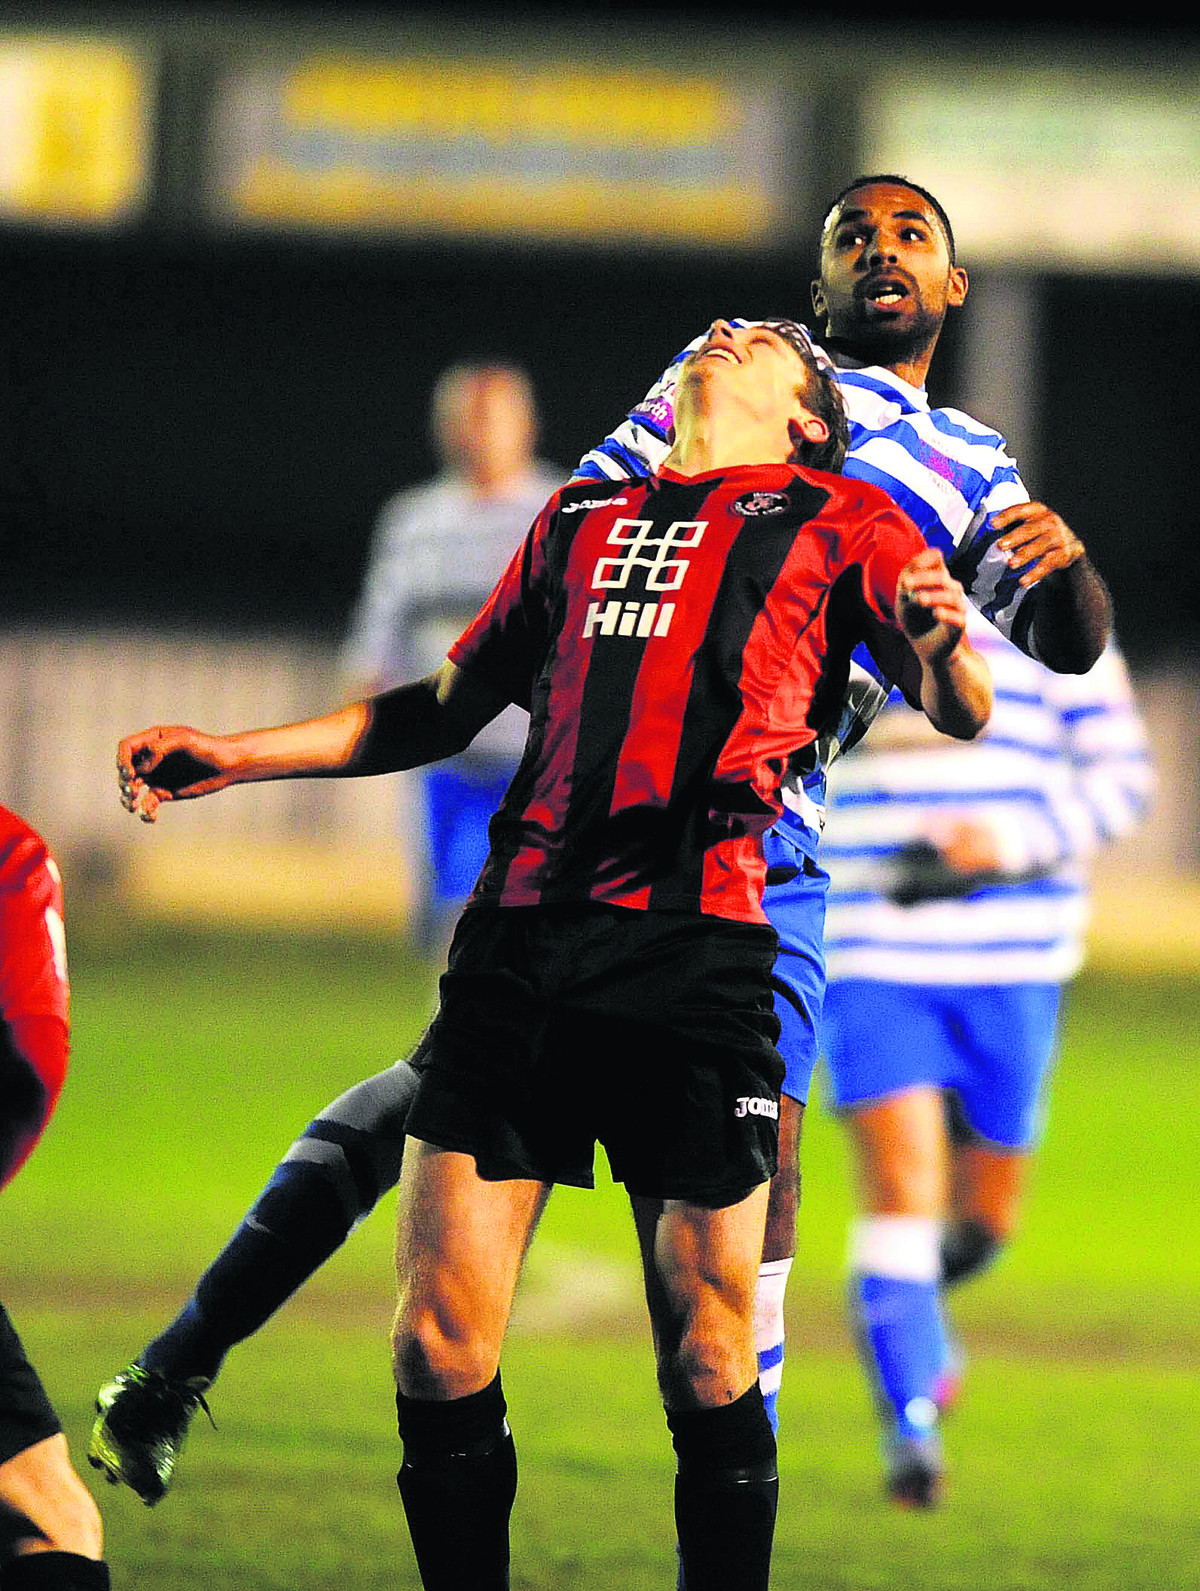 Oxford City's Darren Mullings puts in a header during his debut in Tuesday's 2-1 win against Histon